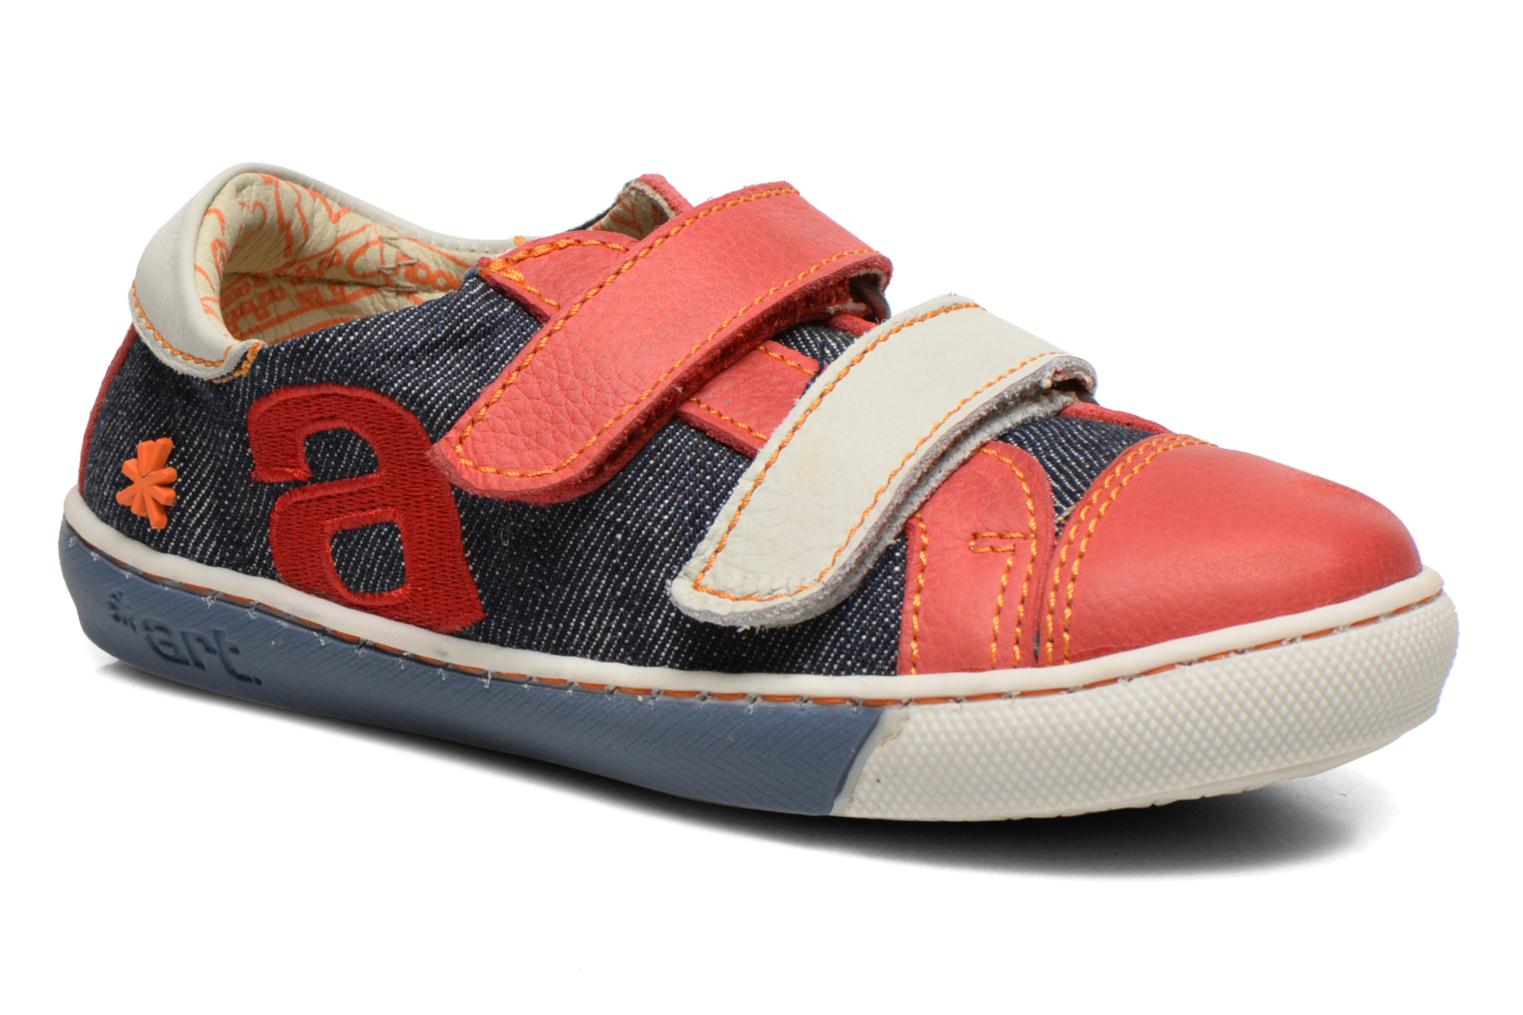 Sneakers Dover 503 by Art